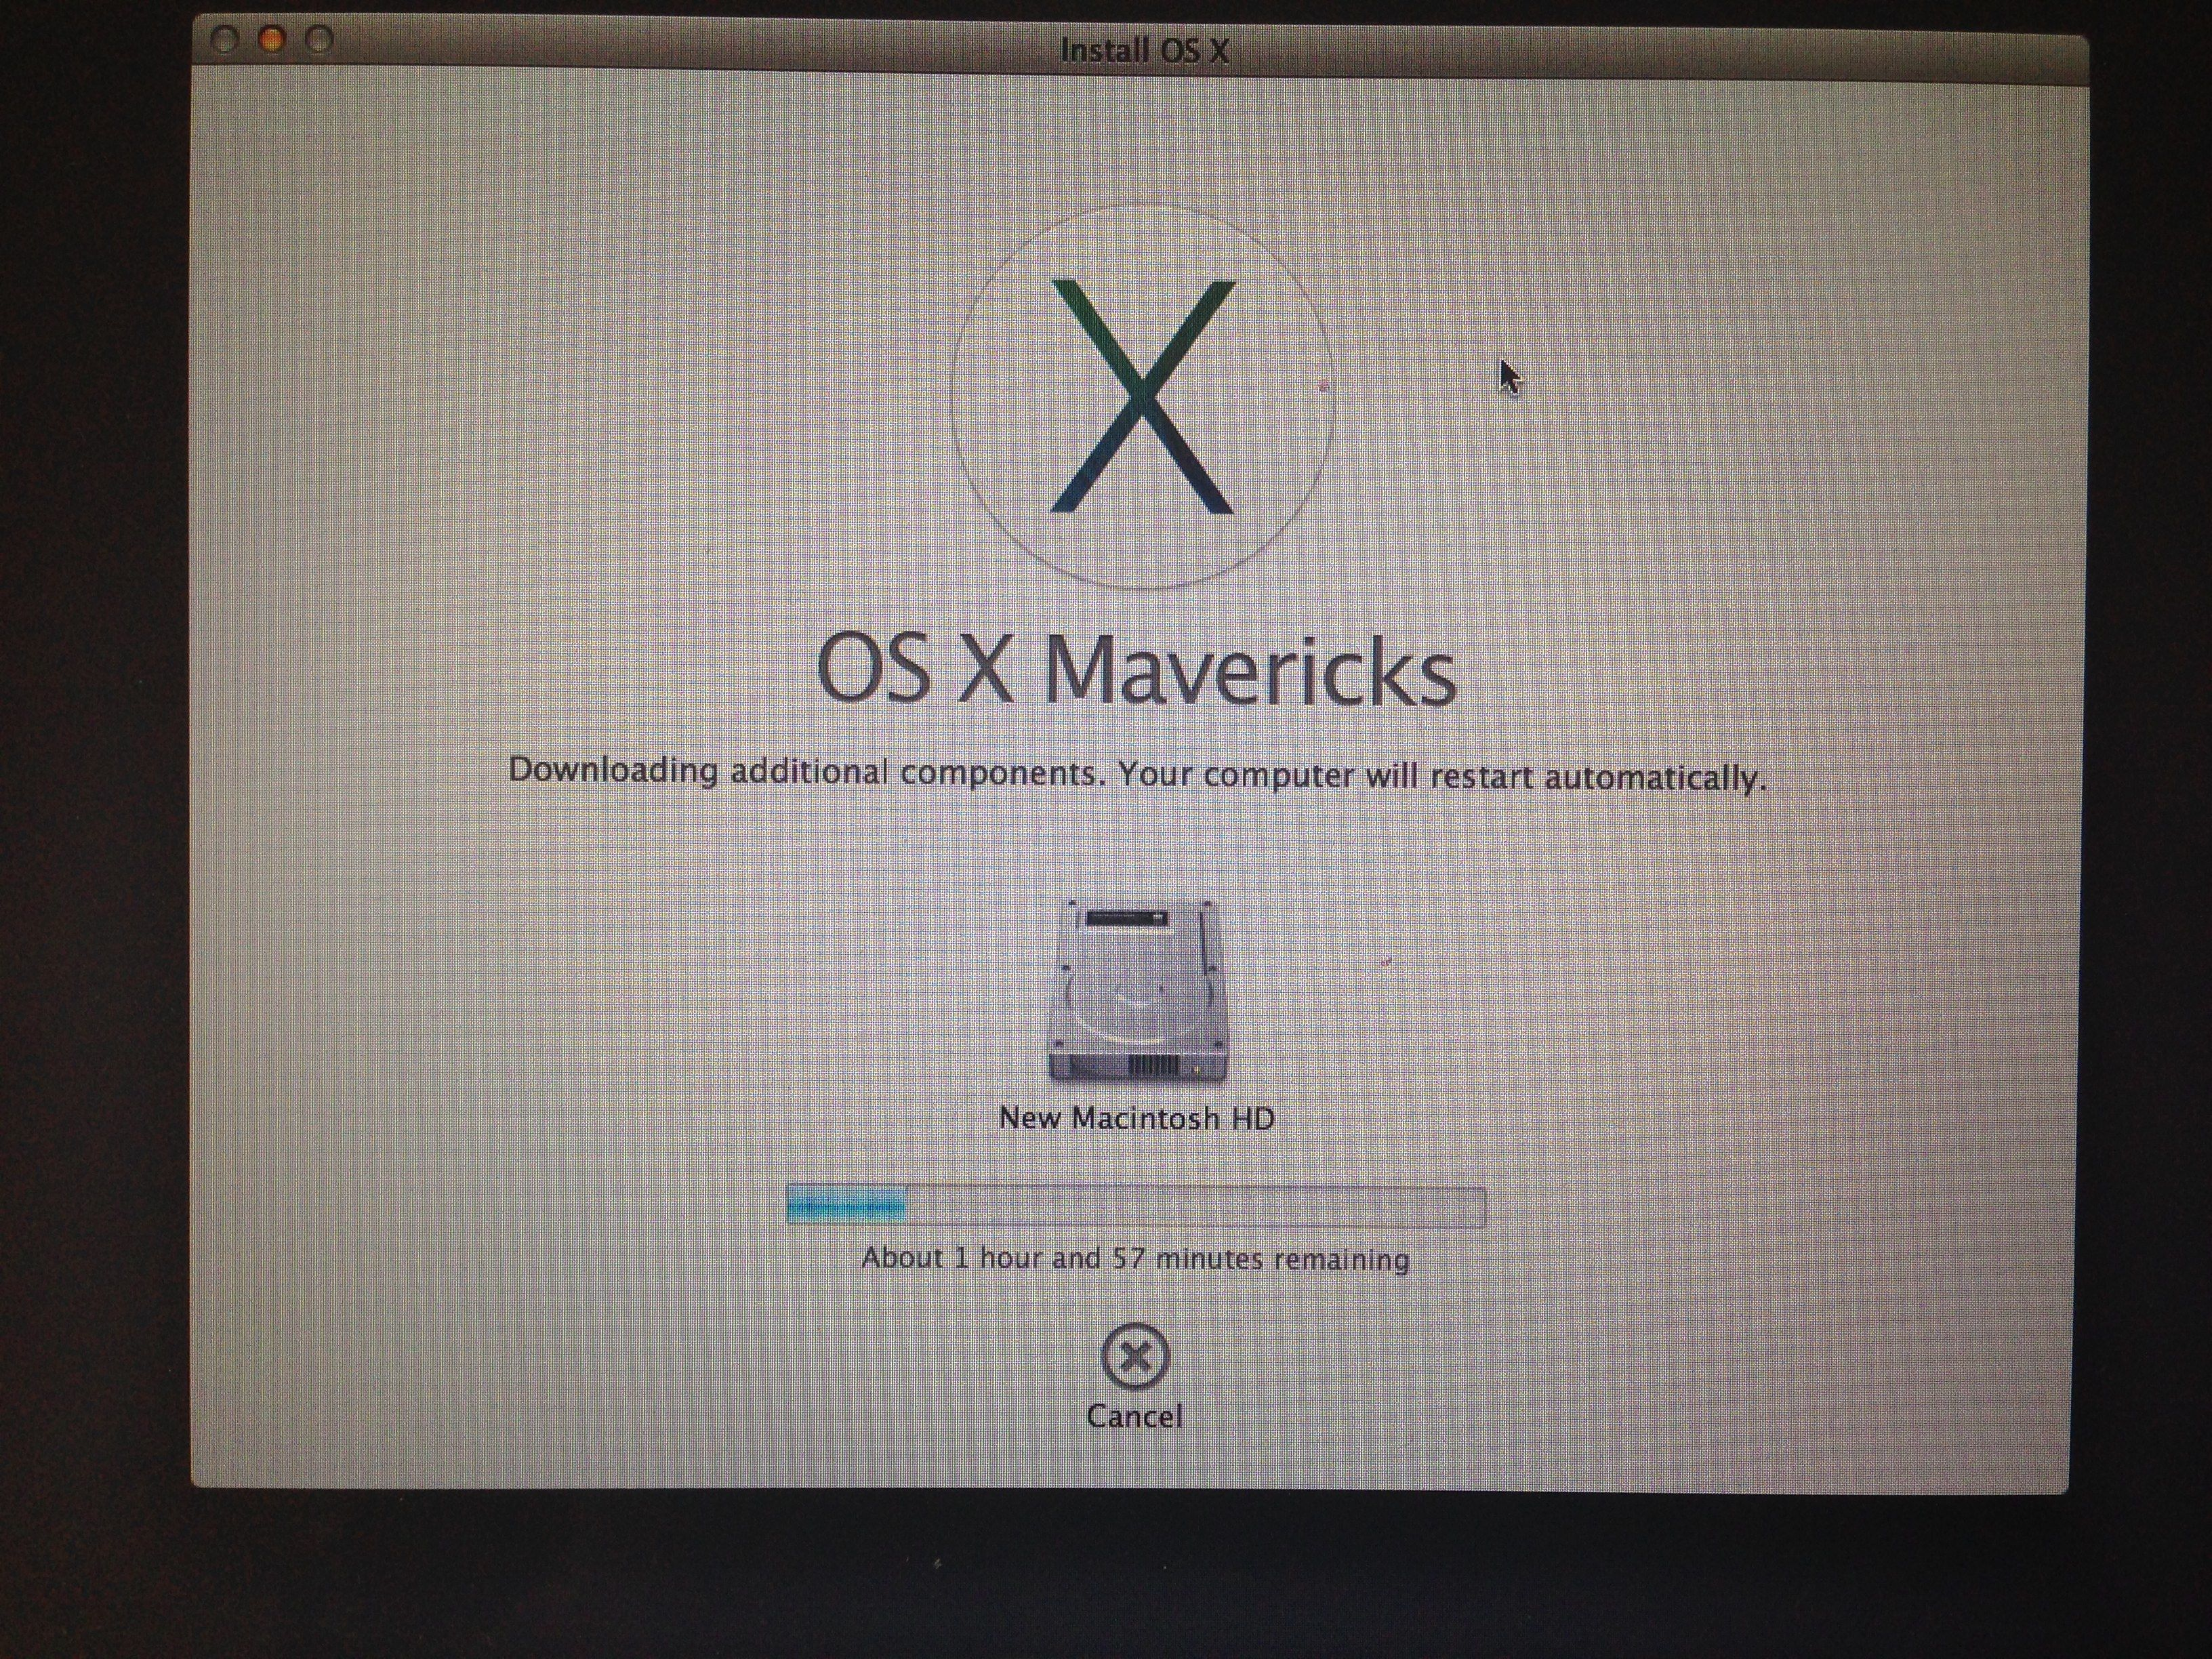 Reinstalling Mavericks